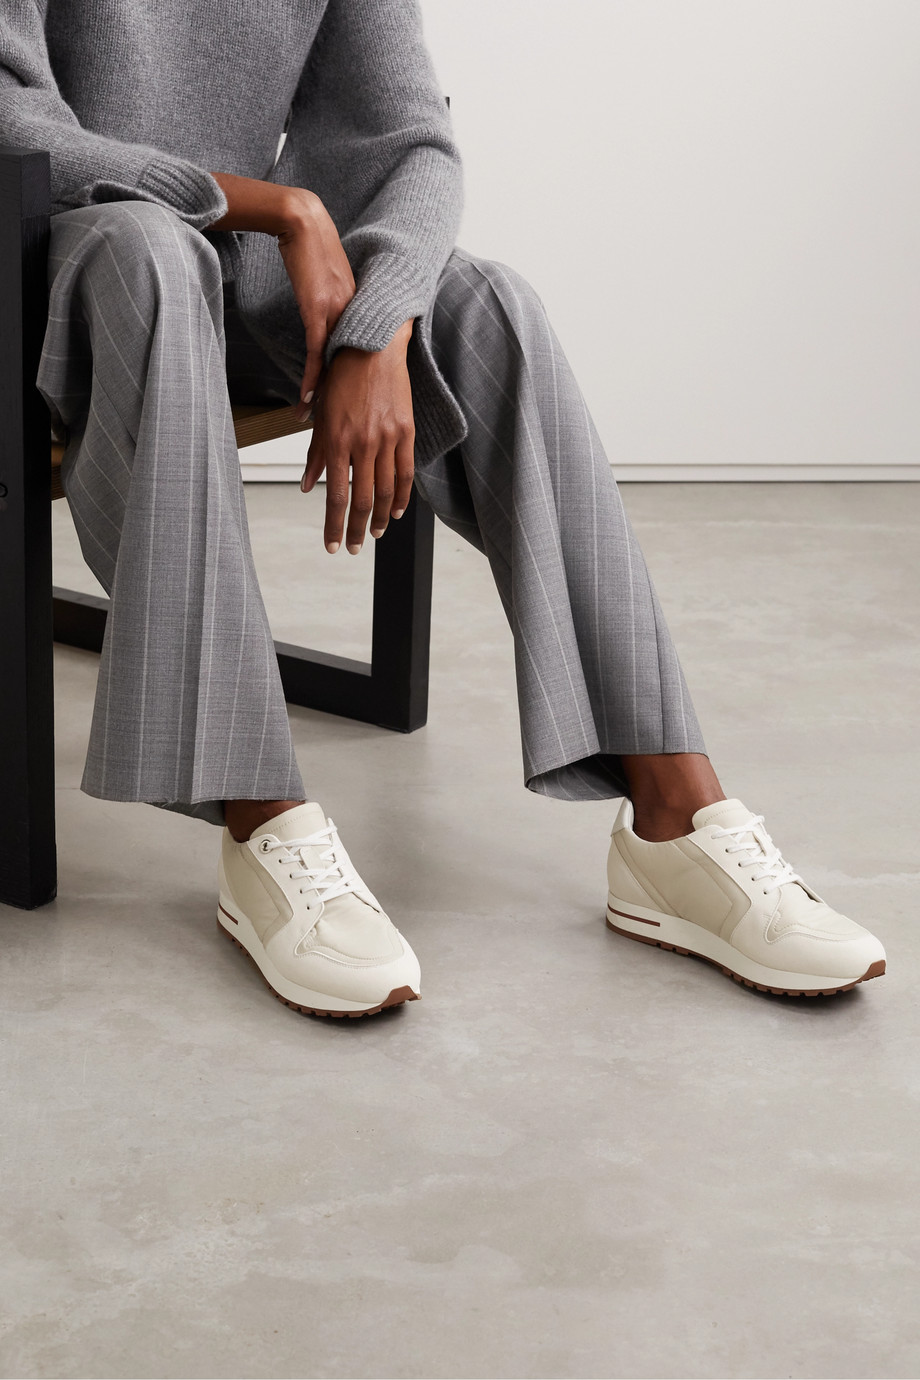 Loro Piana My Wind shell, suede and leather sneakers